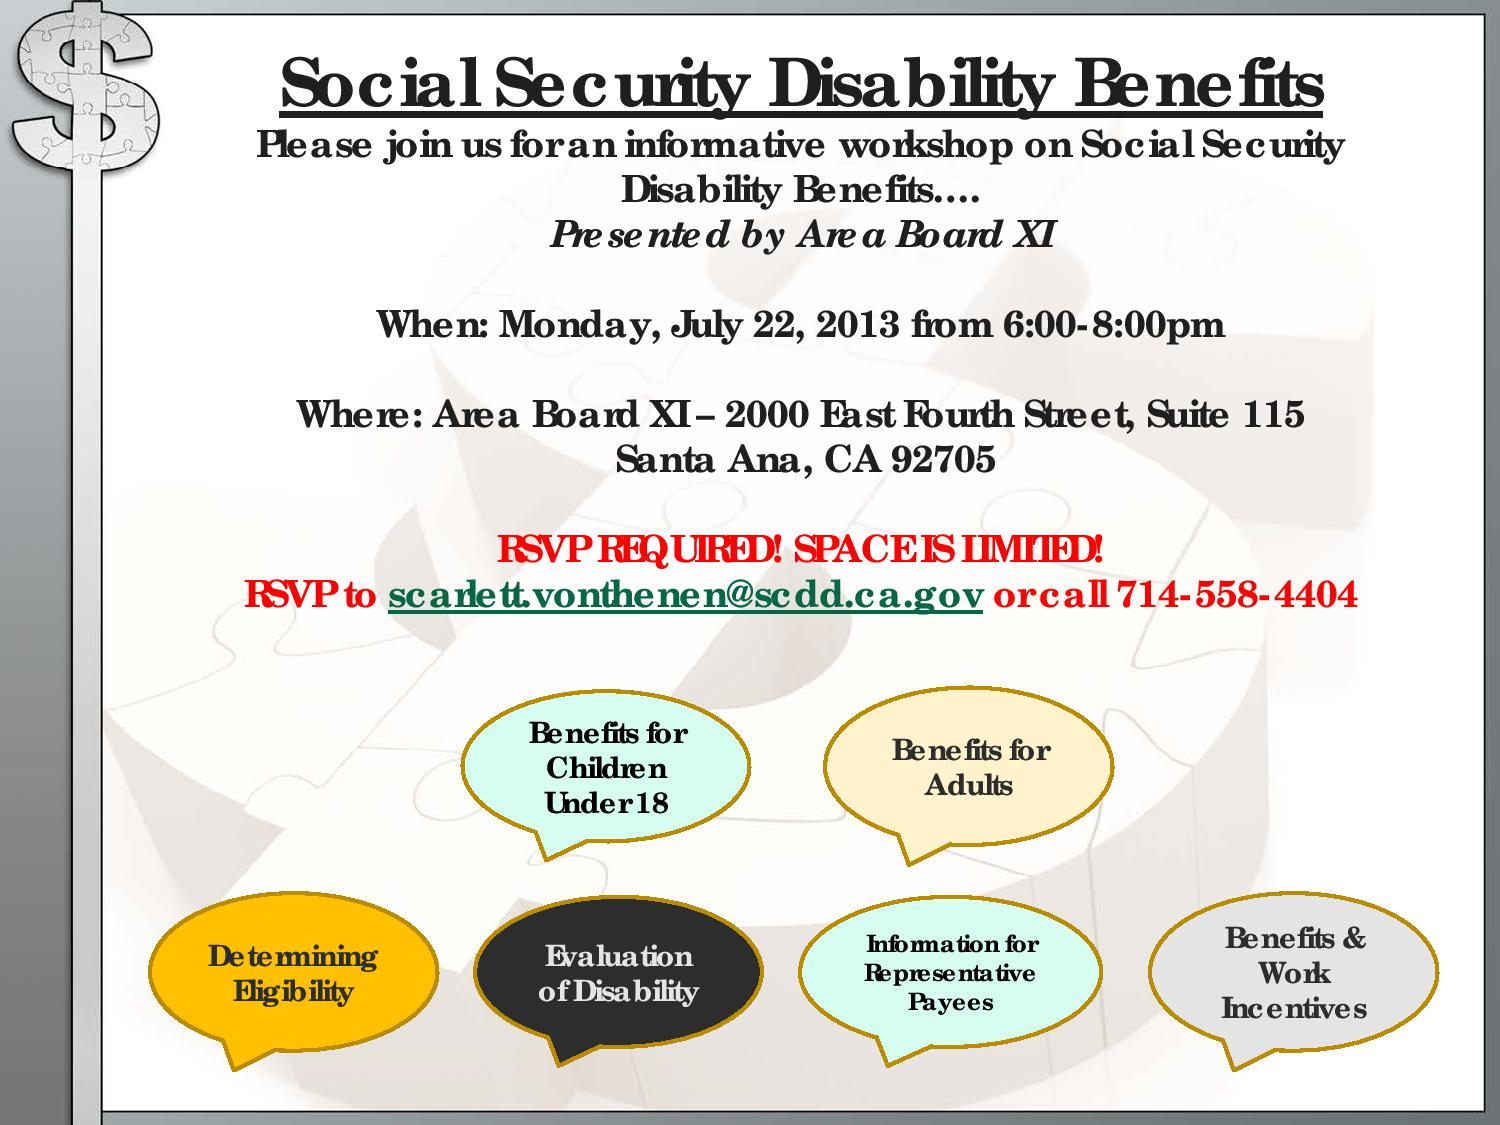 Free workshop social security disability benefits july 22 2013